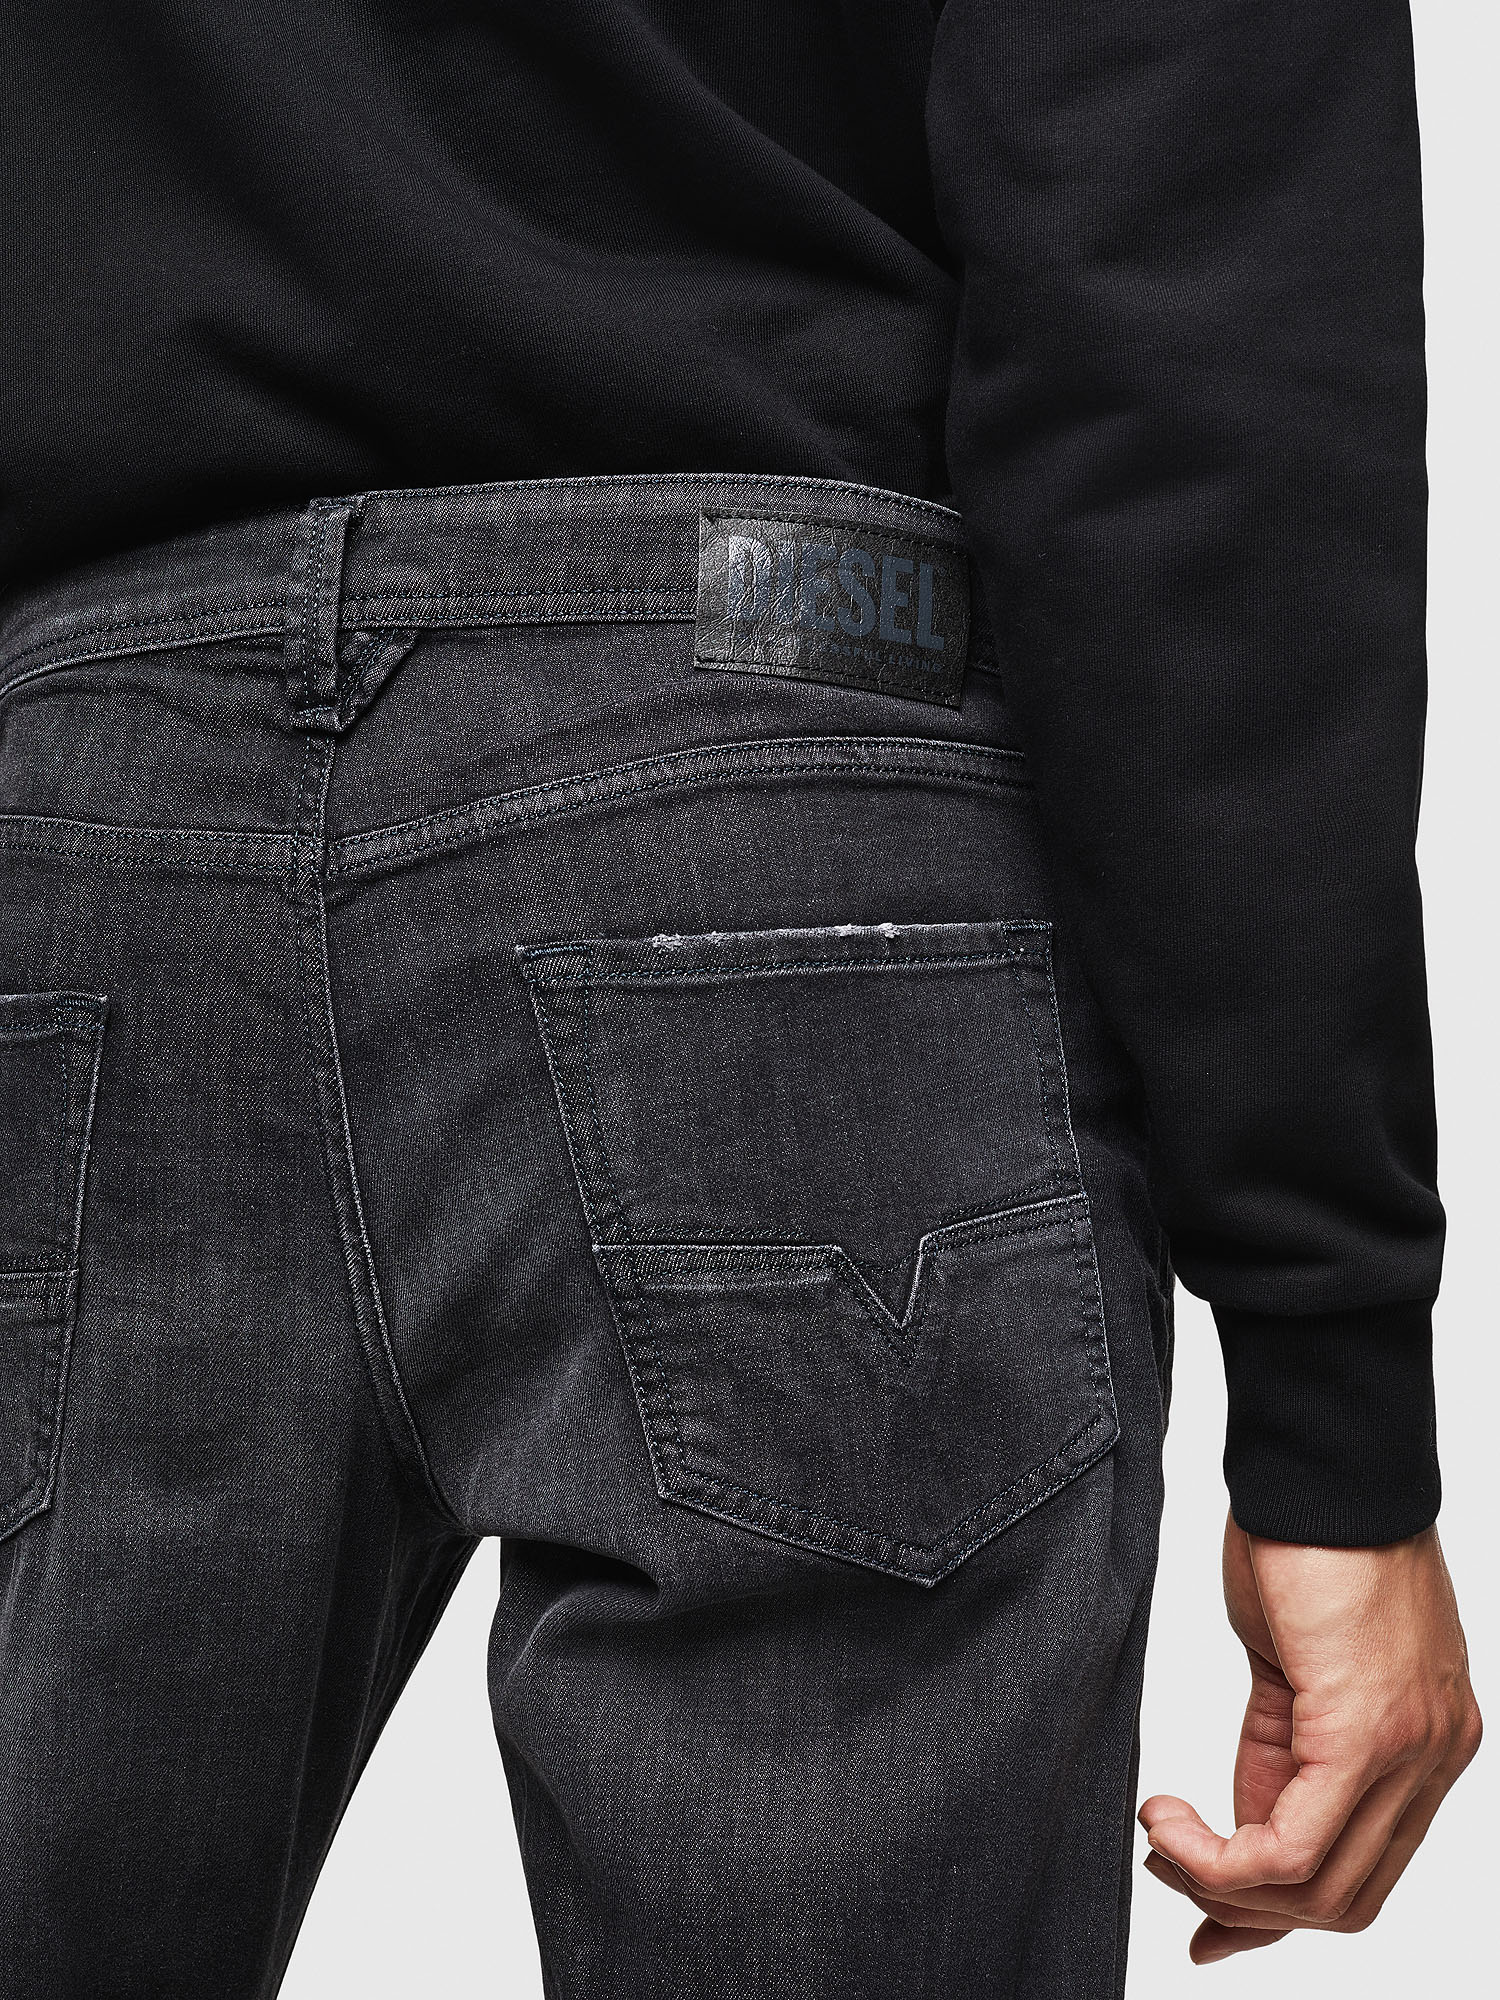 Diesel - Larkee-Beex 082AS,  - Jeans - Image 4